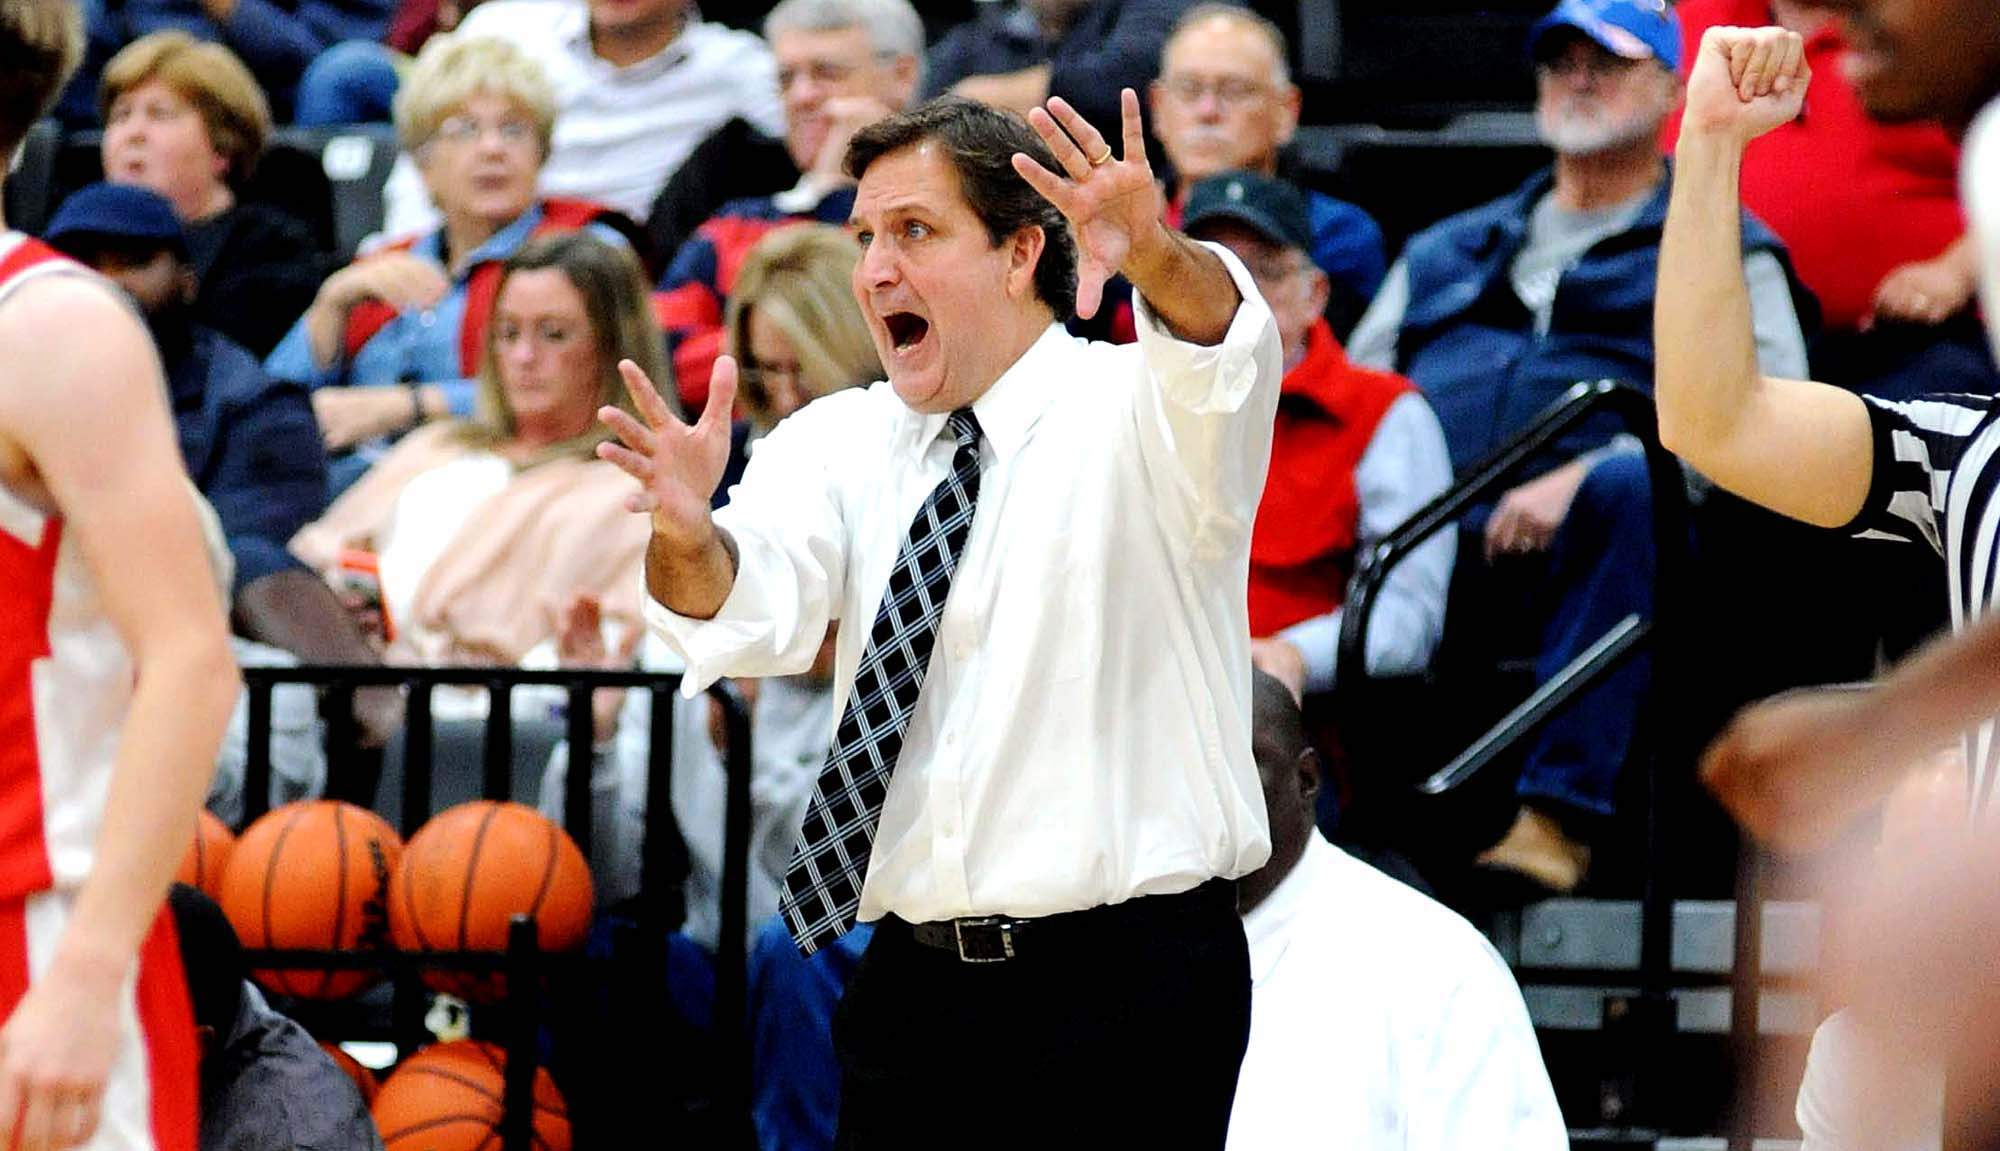 Jim Miller, who began his coaching career at Wilmington, with a brief stop at Fairfield, has been a fixture at Carbondale since 1998.